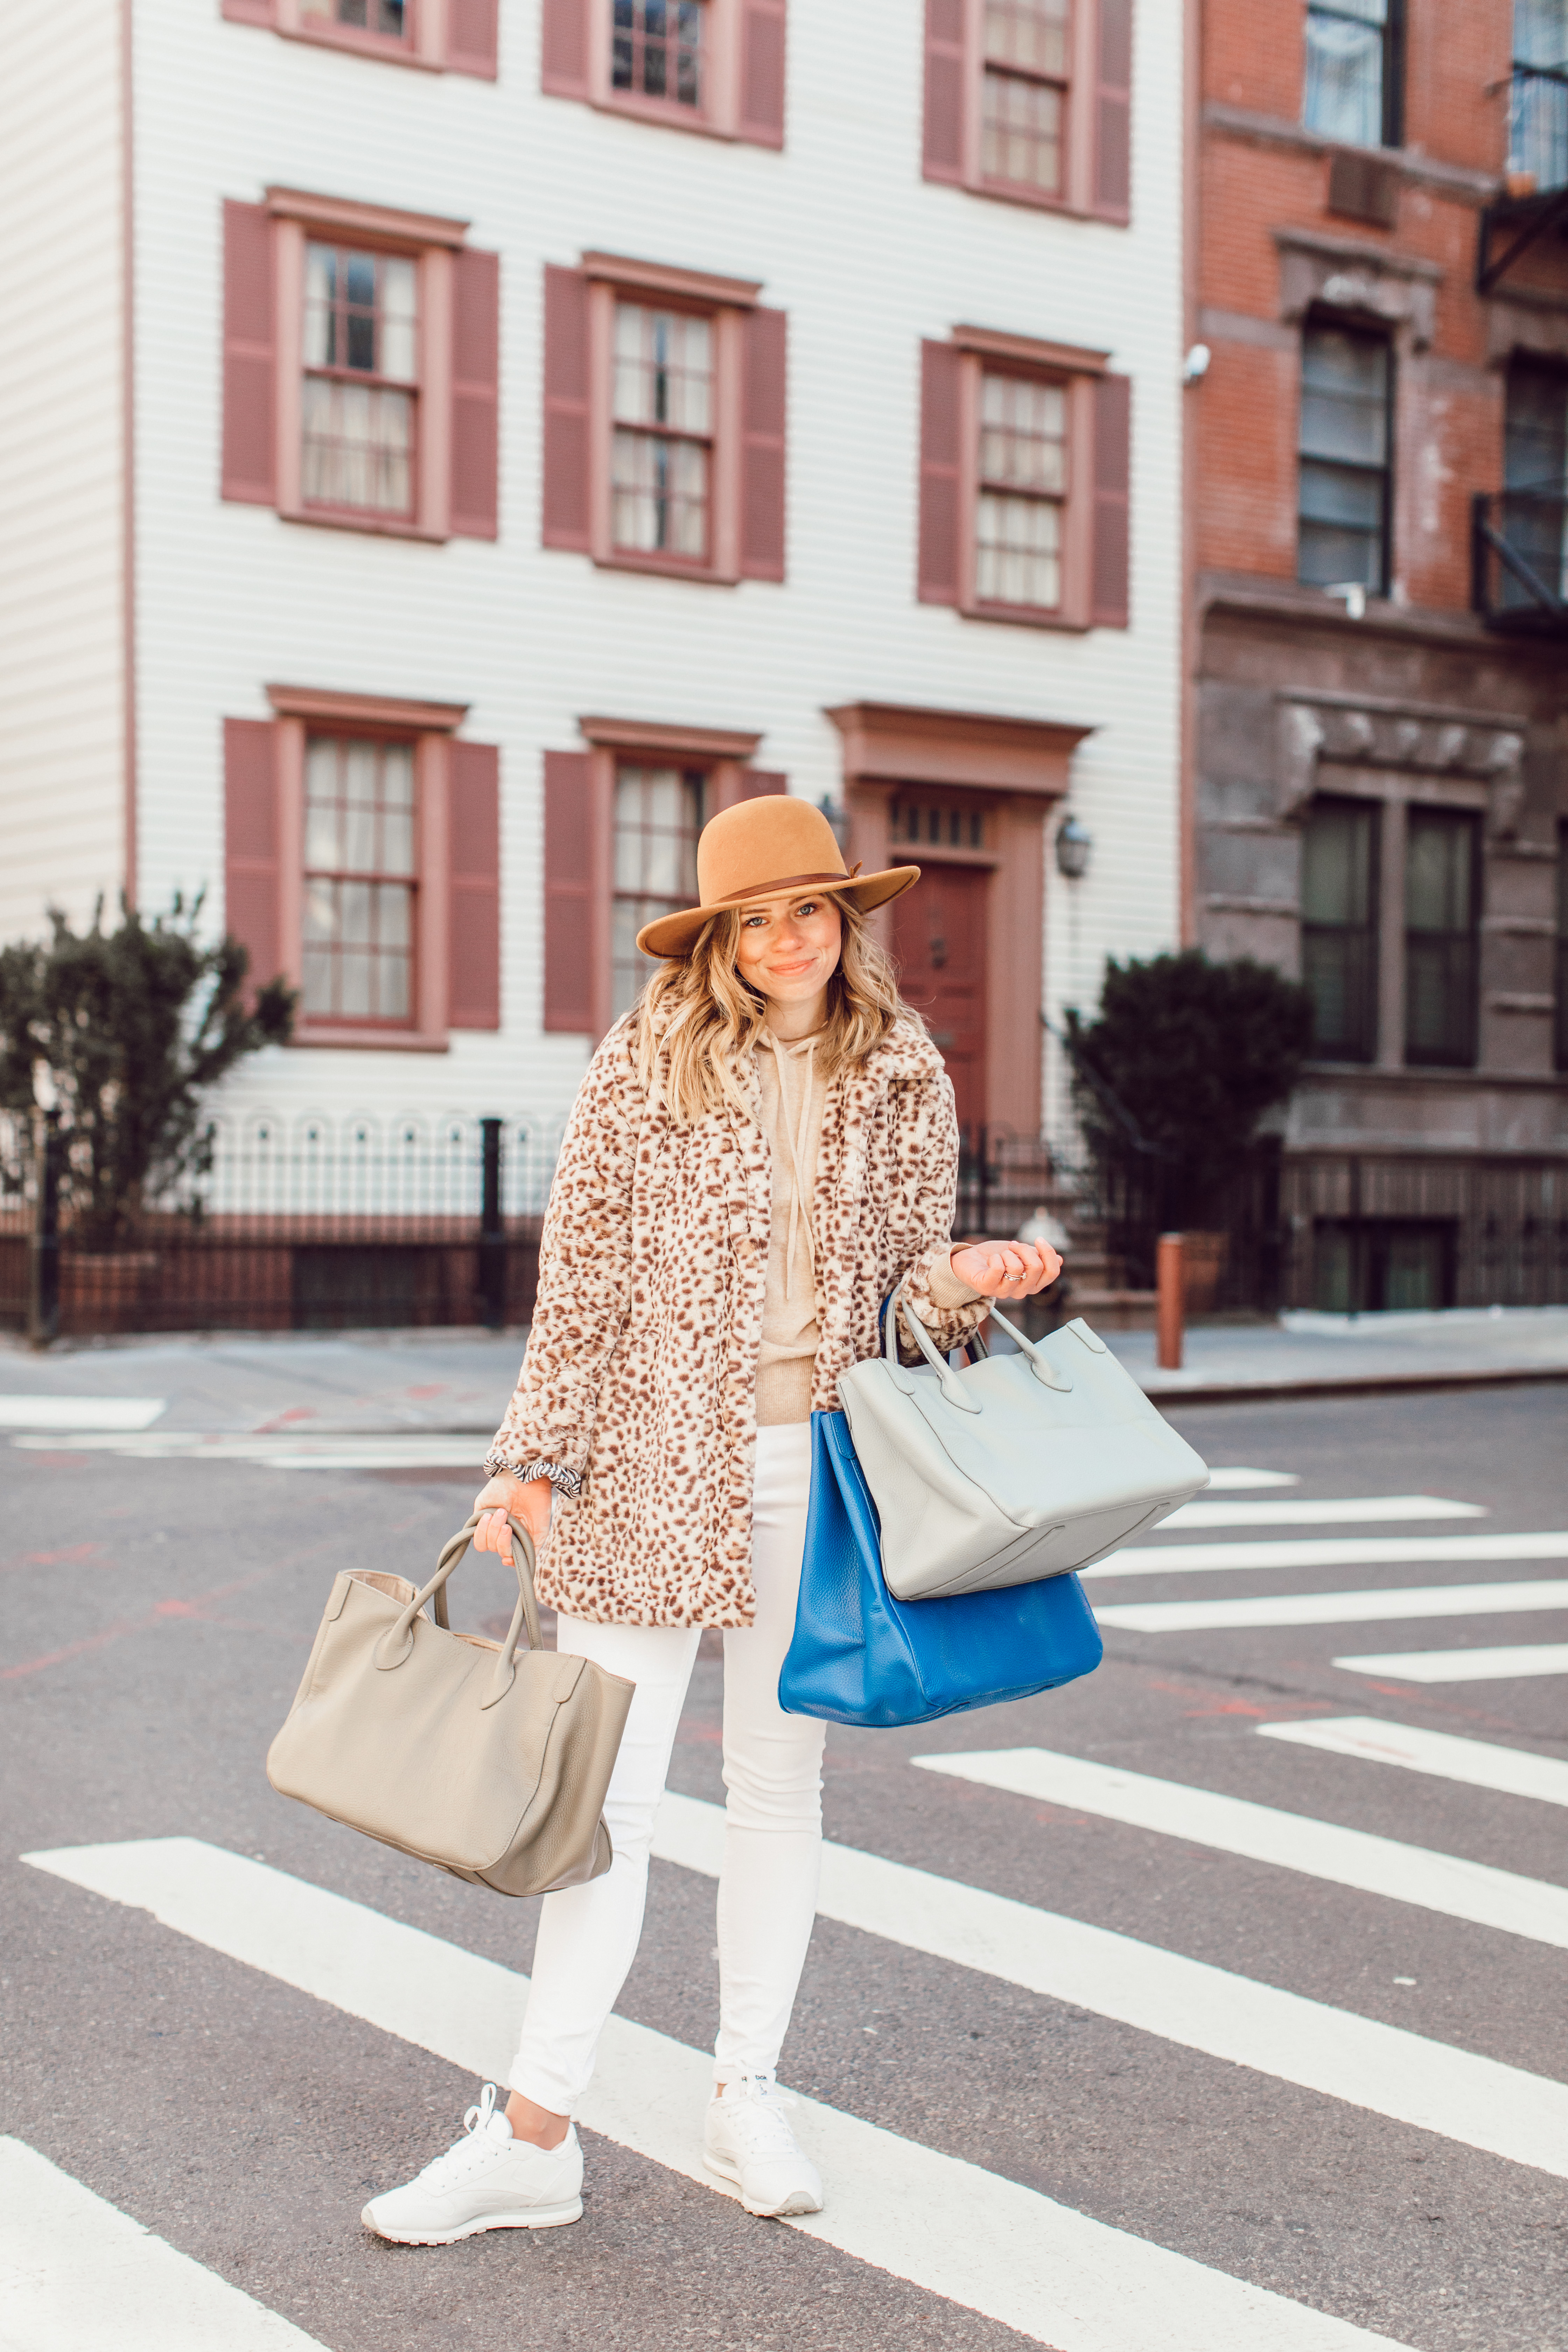 Presidents Day Sale Finds | Best Presidents Day Sales 2019, Presidents Day Sales to Shop featured on Louella Reese Life & Style Blog